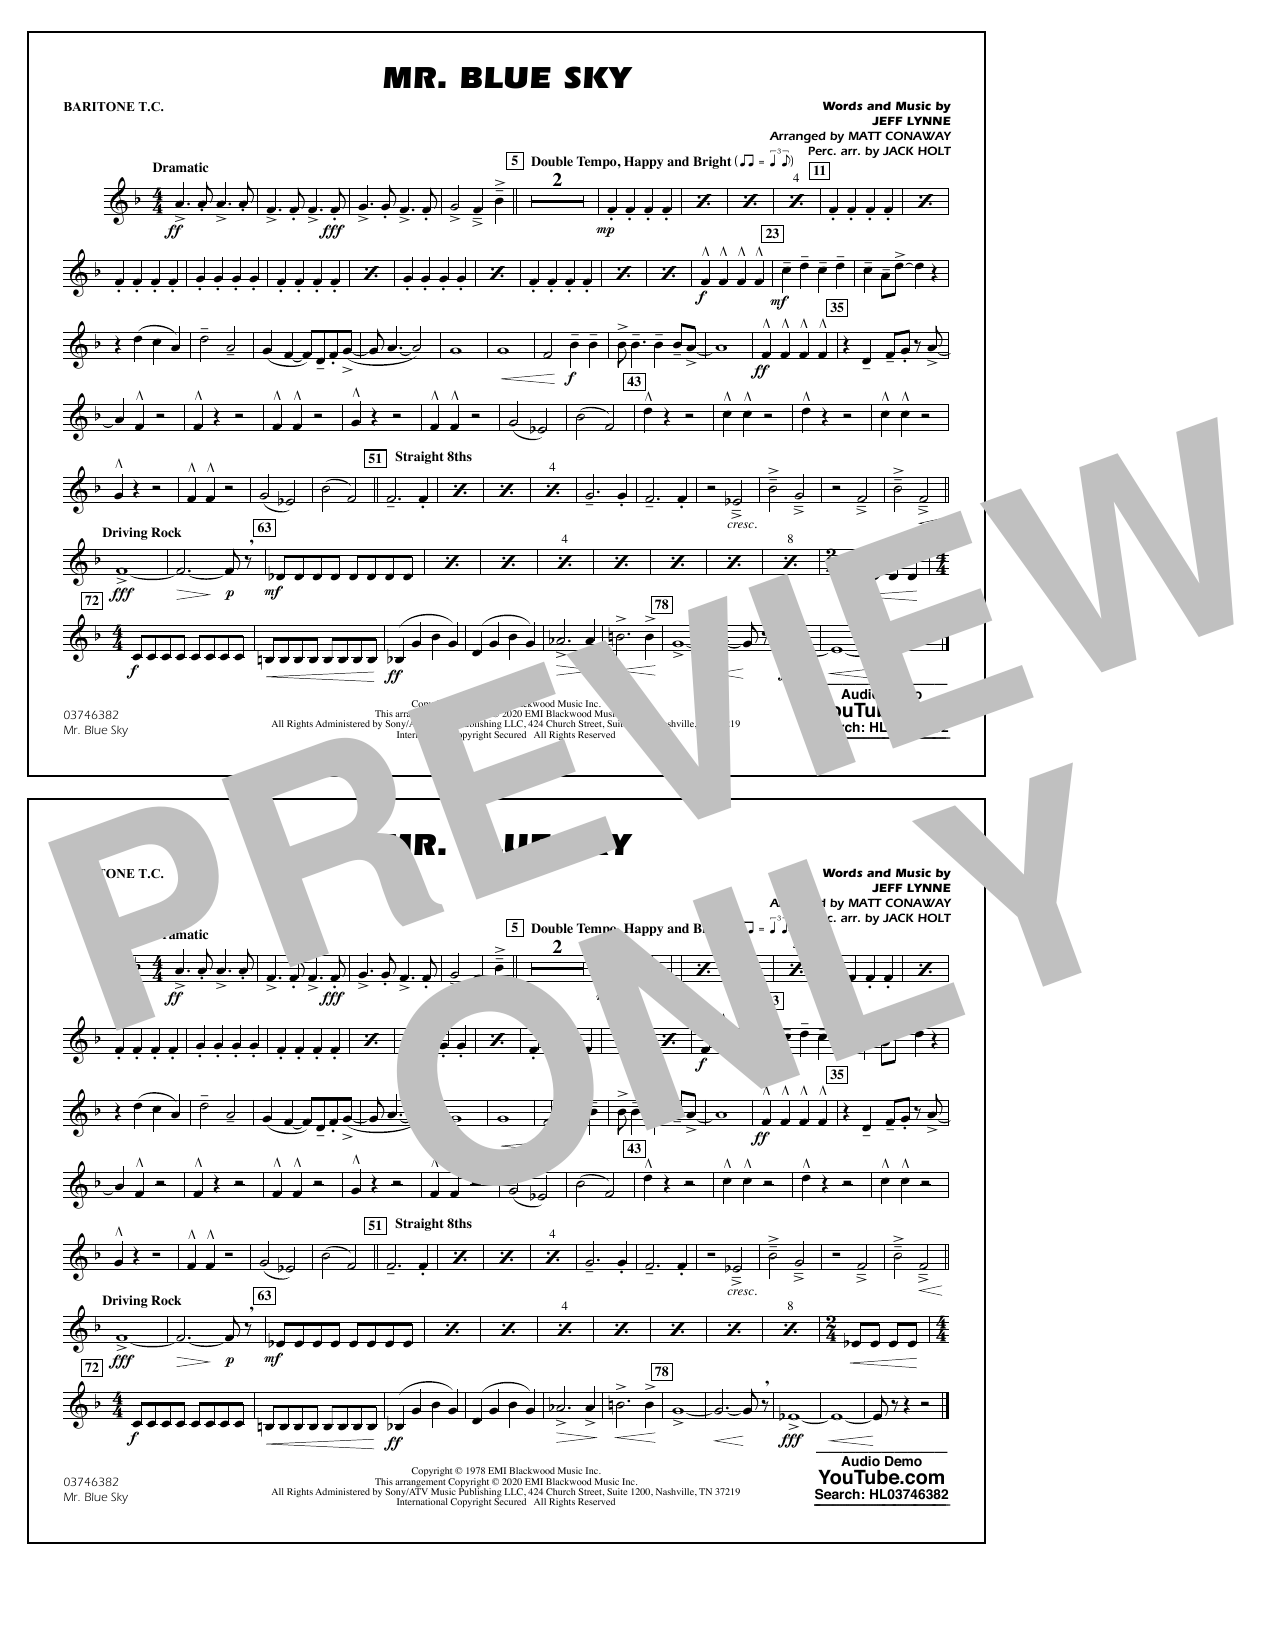 Mr. Blue Sky (arr. Matt Conaway) - Baritone T.C. Sheet Music